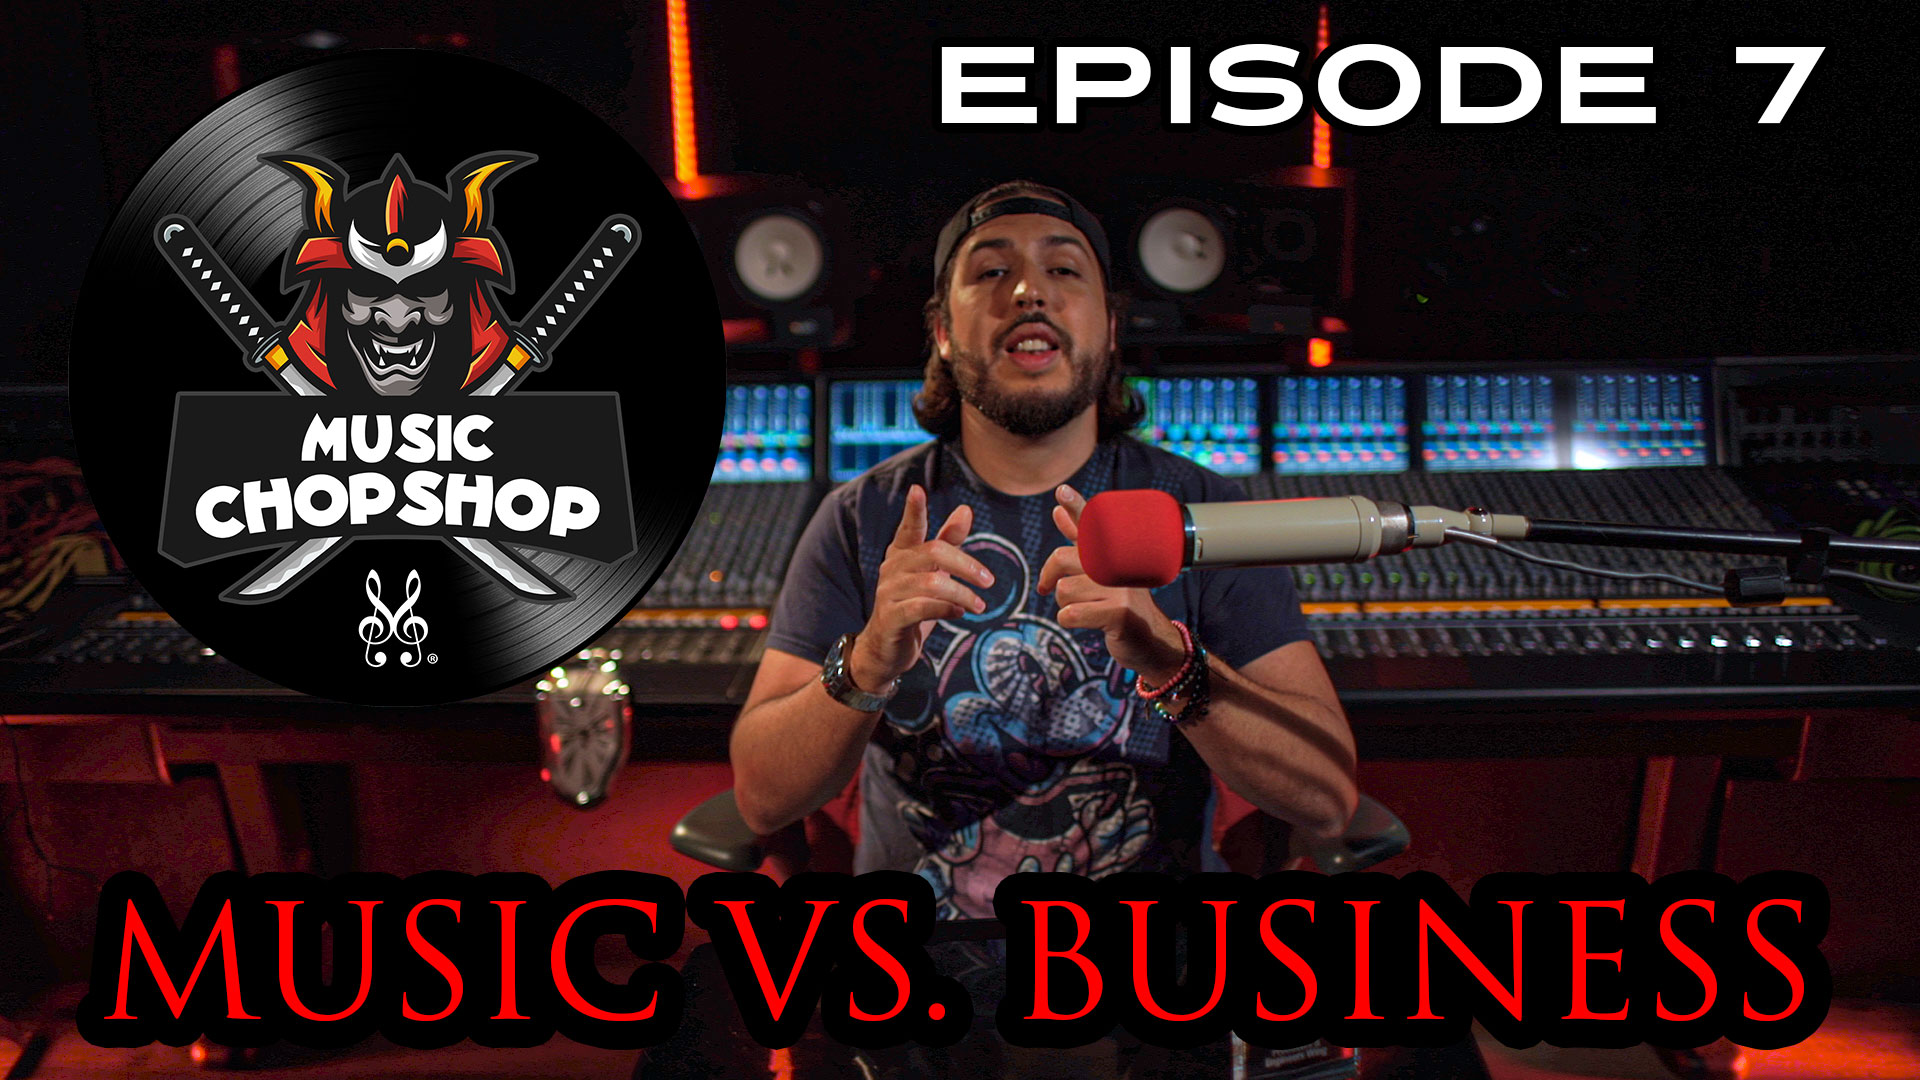 Music vs. Business | Music Chop Shop Podcast with @ALEX J | EP 7 (ENGLISH) | MusicMastermind.TV